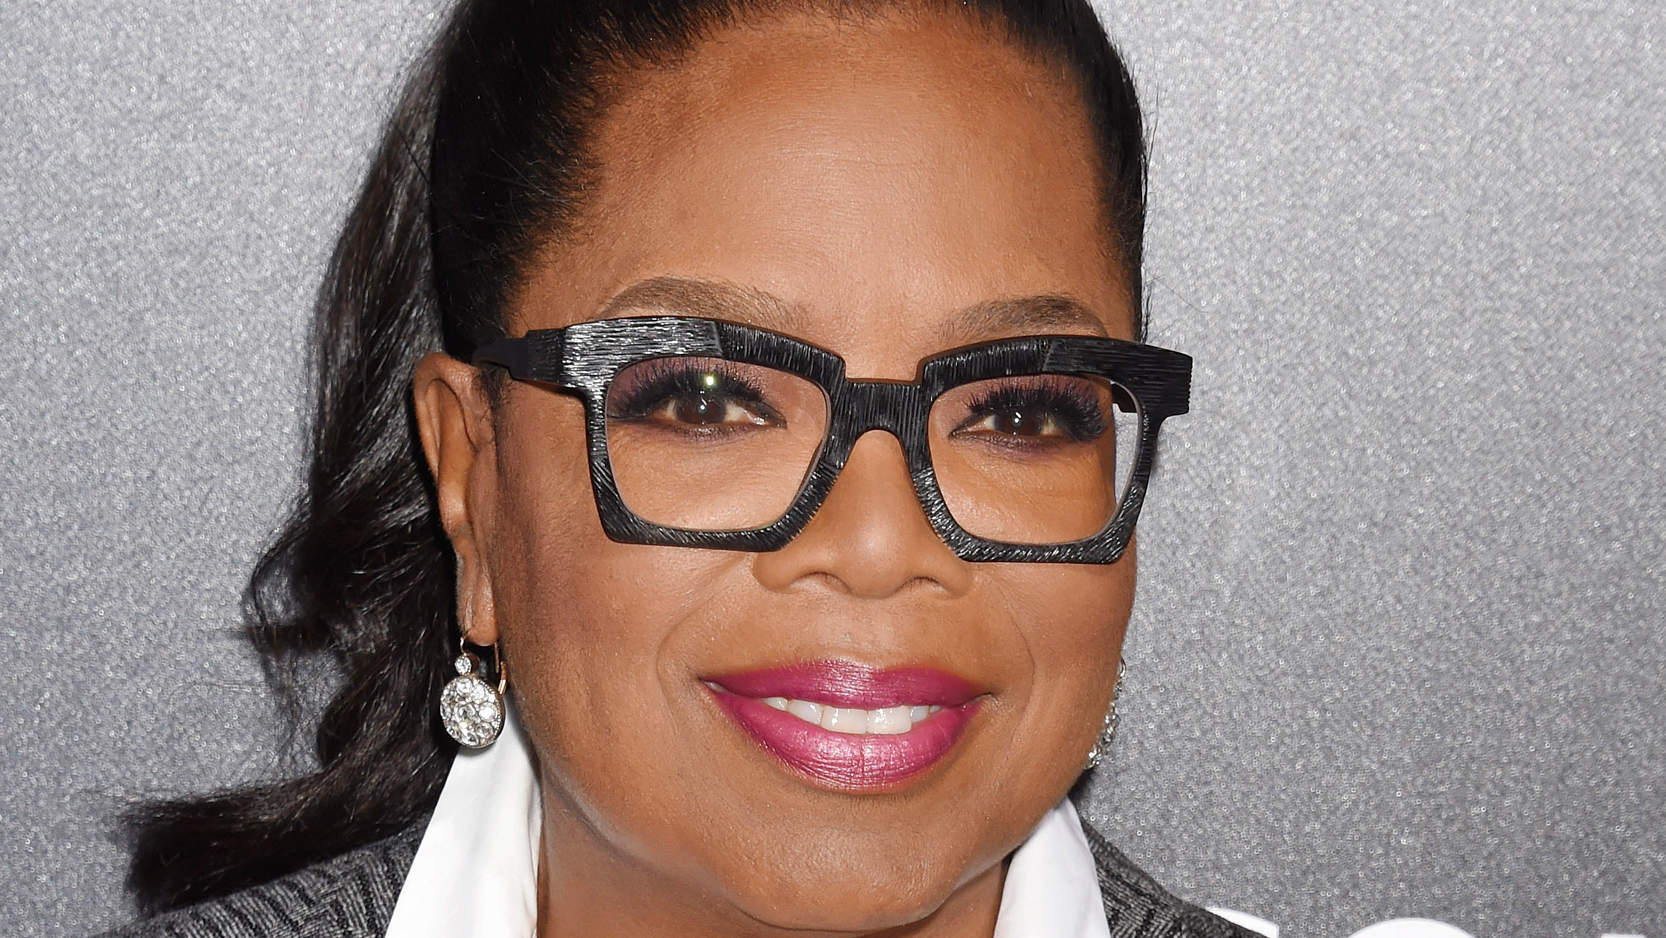 Oprah Winfrey's $90 Shoes Were Made for Aching Feet